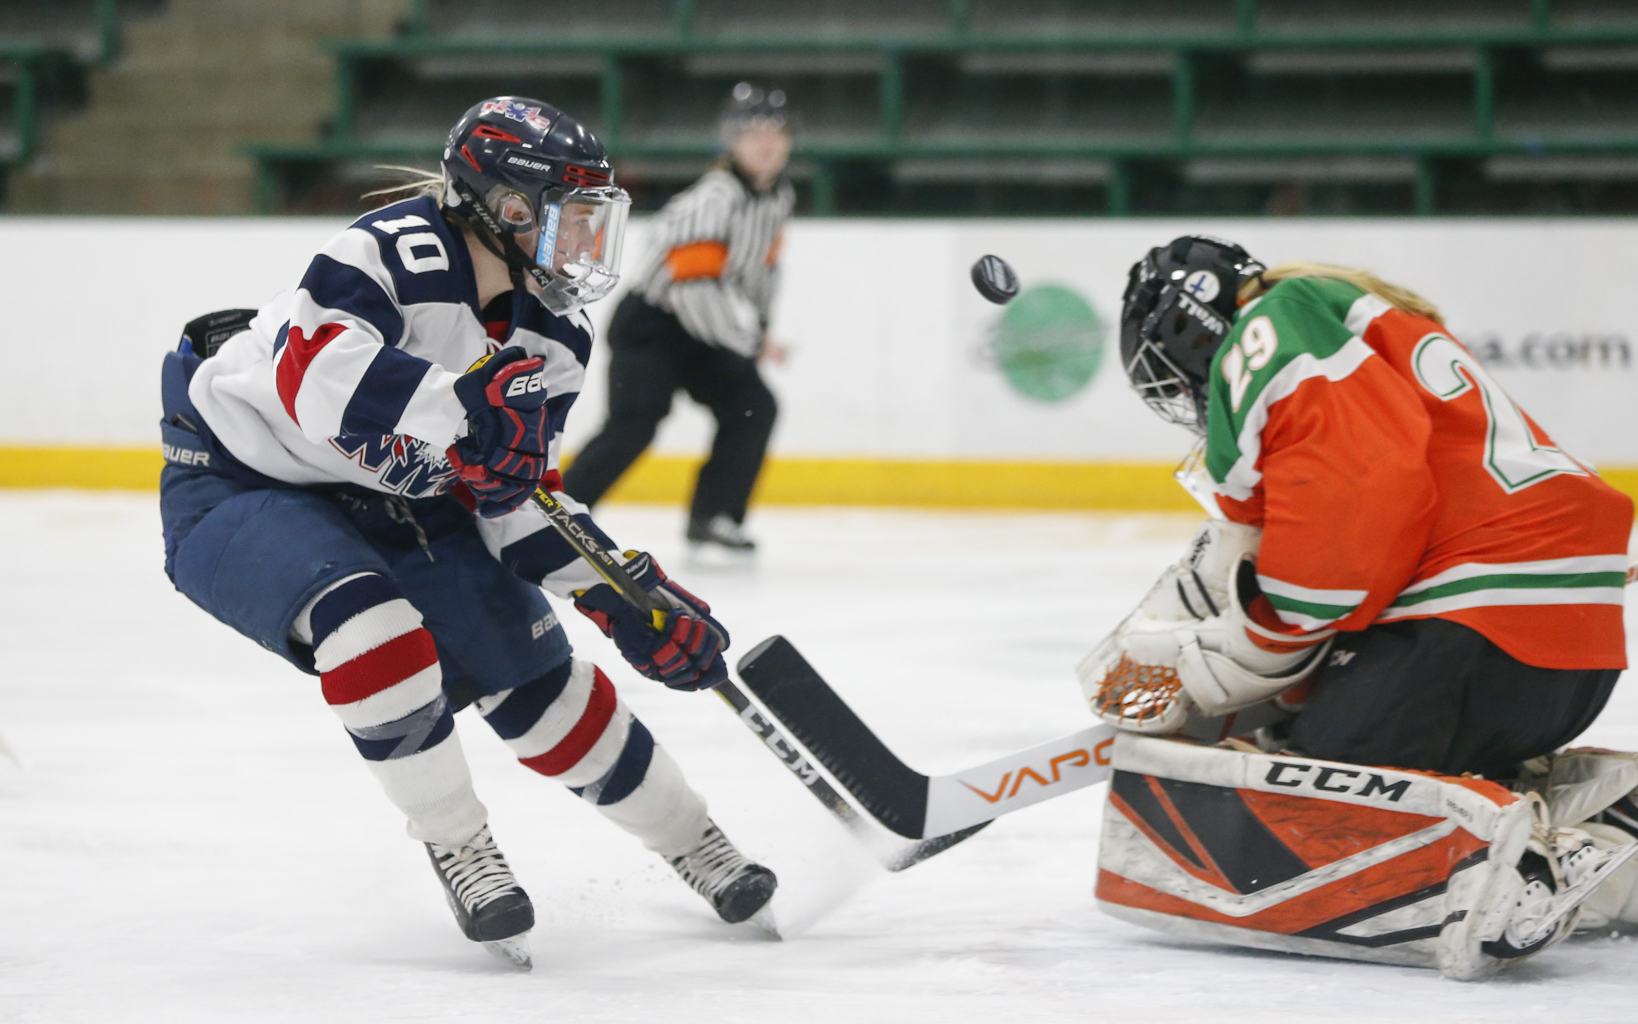 North Wright County's Mackenzie Bourgerie (10) tries to track down a rebound against Grand Rapids/Greenway Thursday afternoon. Bourgerie had a goal and an assist in the the River Hawks' 4-1 victory over the Lightning. Photo by Jeff Lawler, SportsEngine